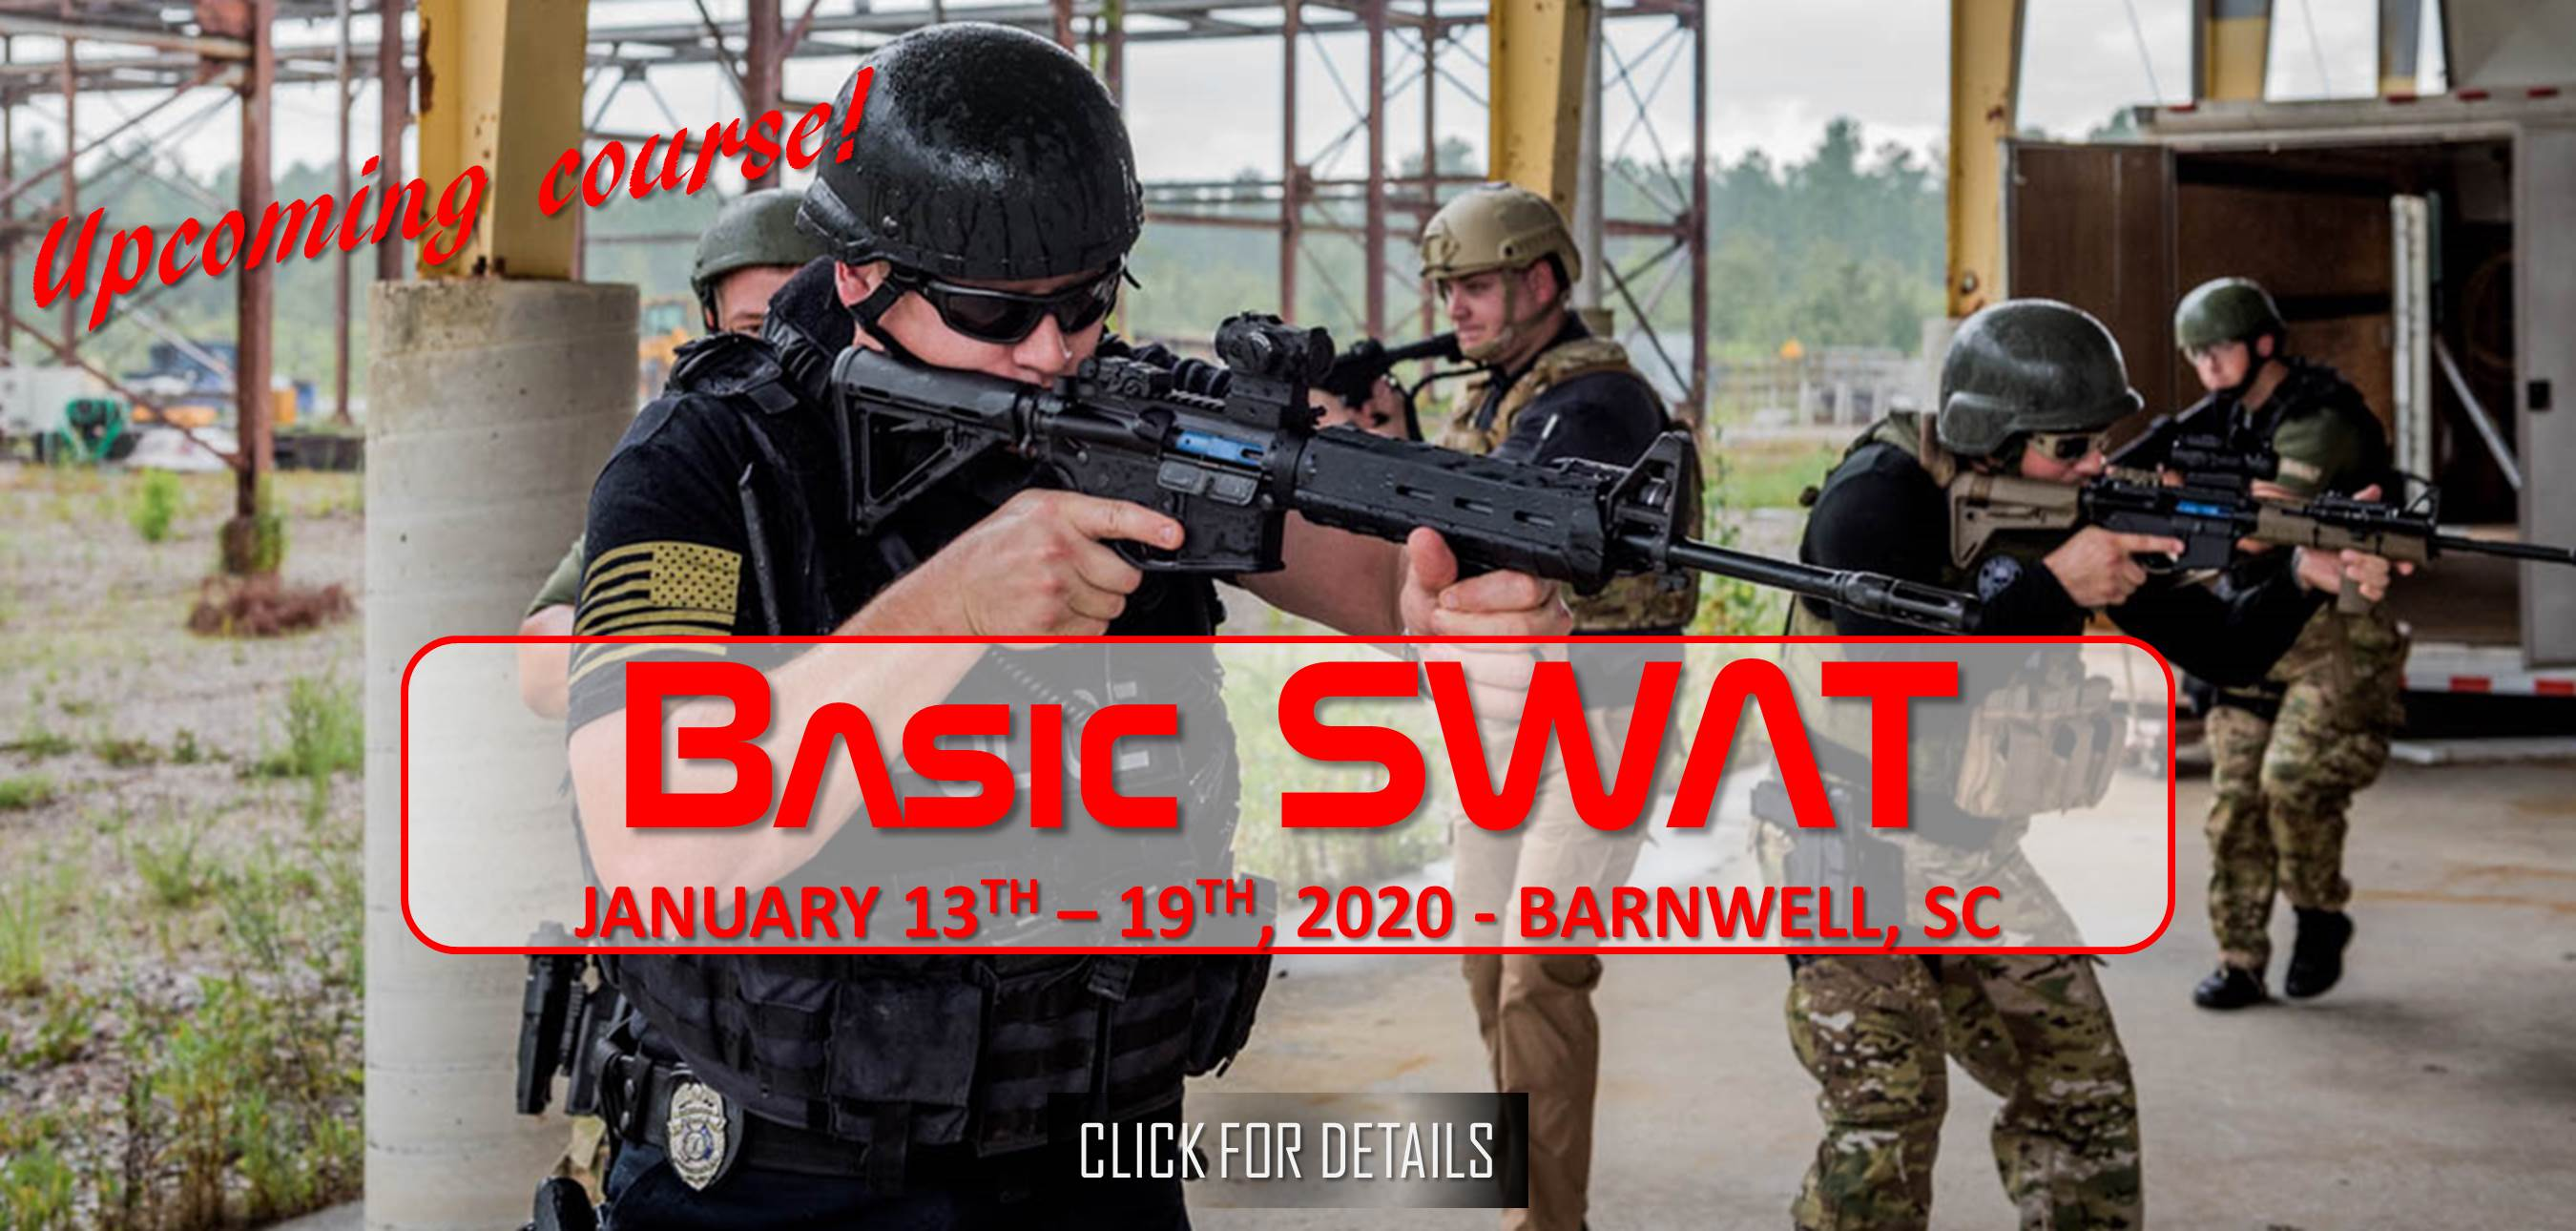 DHS Basic SWAT January 13th - 19th, 2020